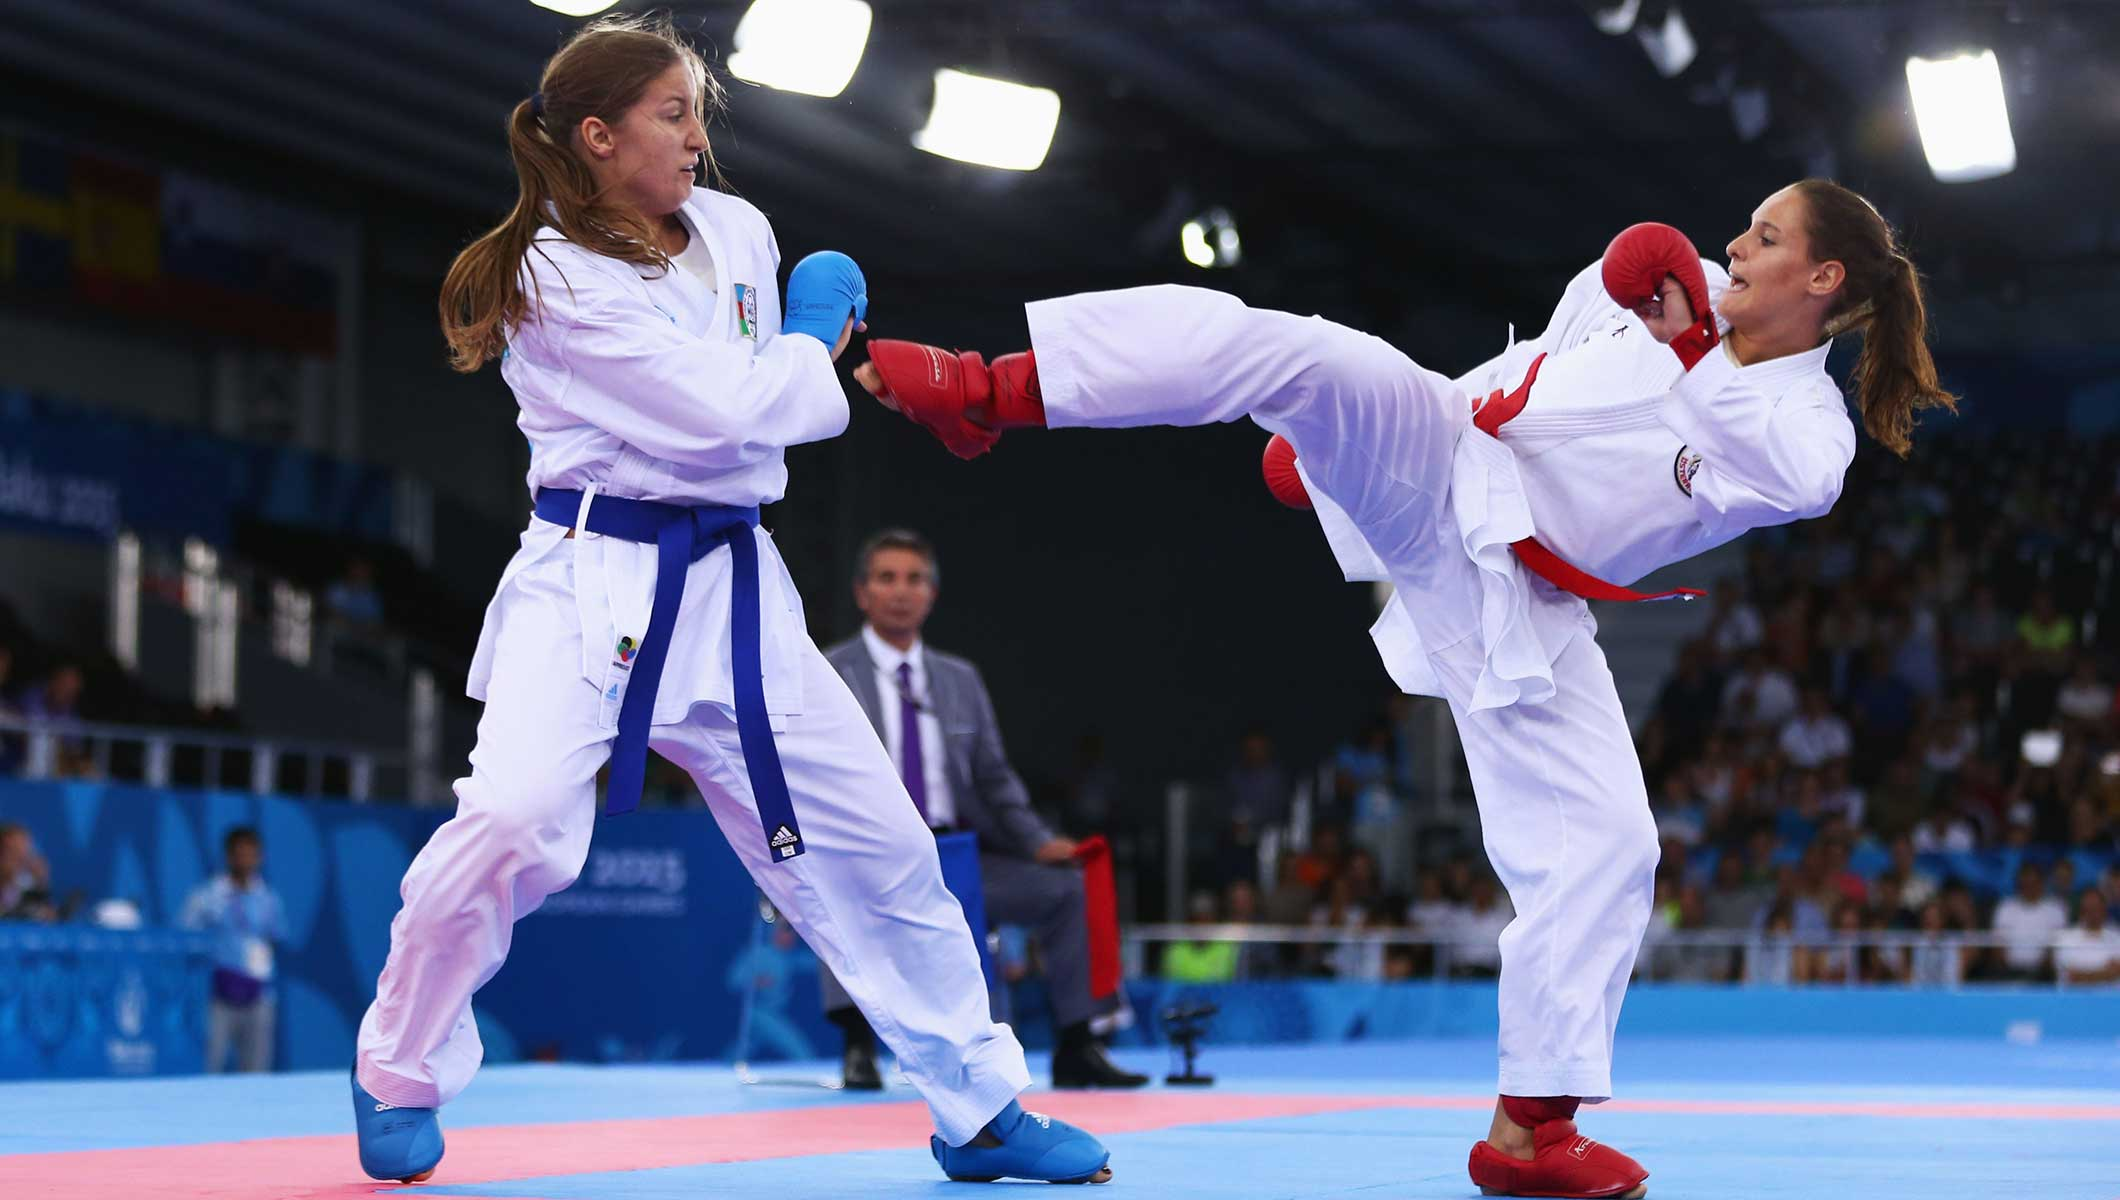 Mind and body alliance is key for karate gold - Olympic News